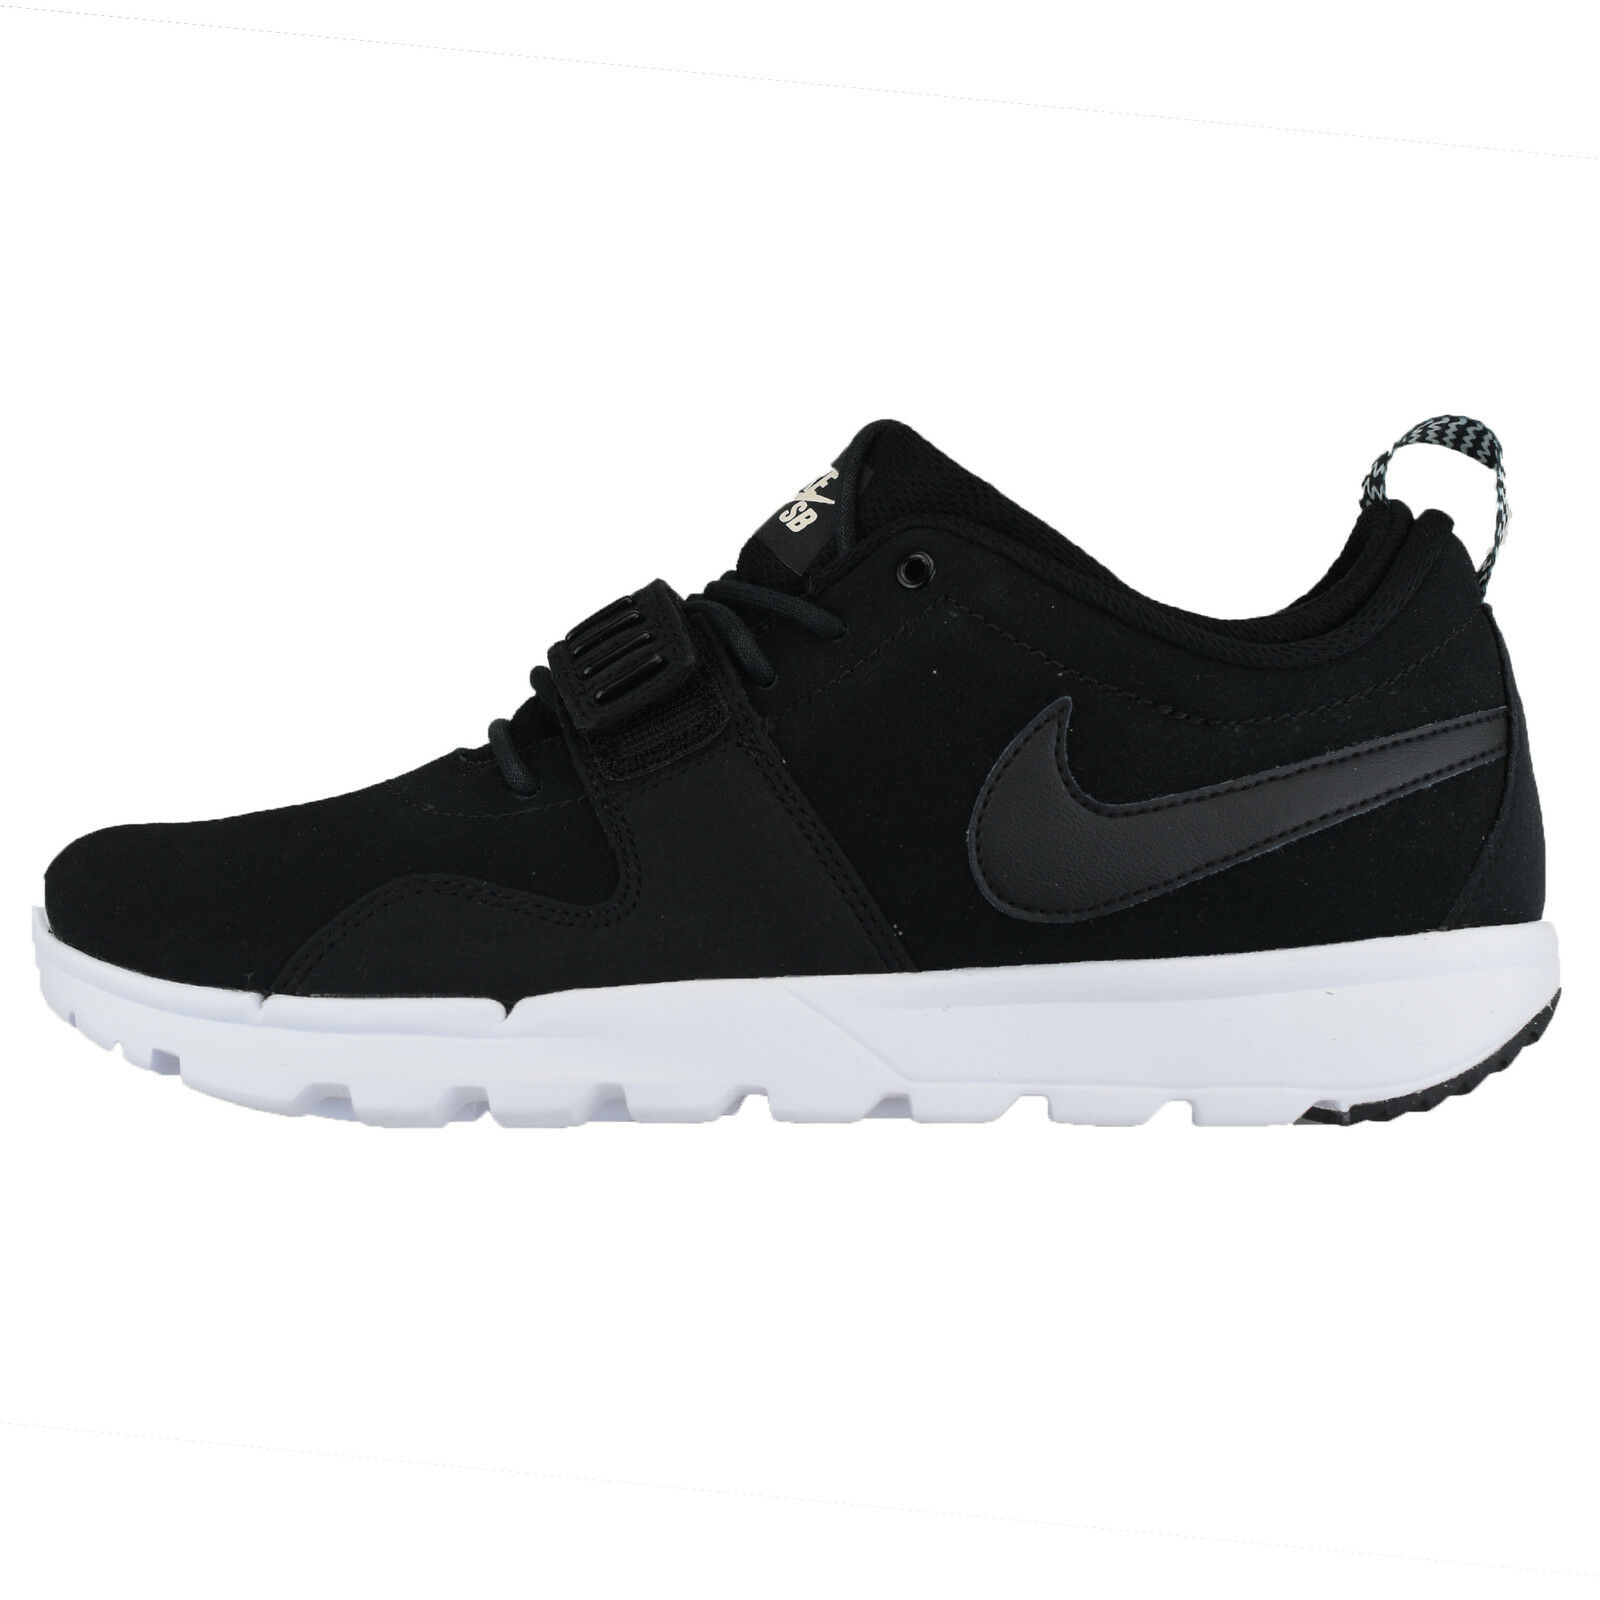 Nike Trainerendor L 806309-002 Sneakers Casual shoes Leather shoes